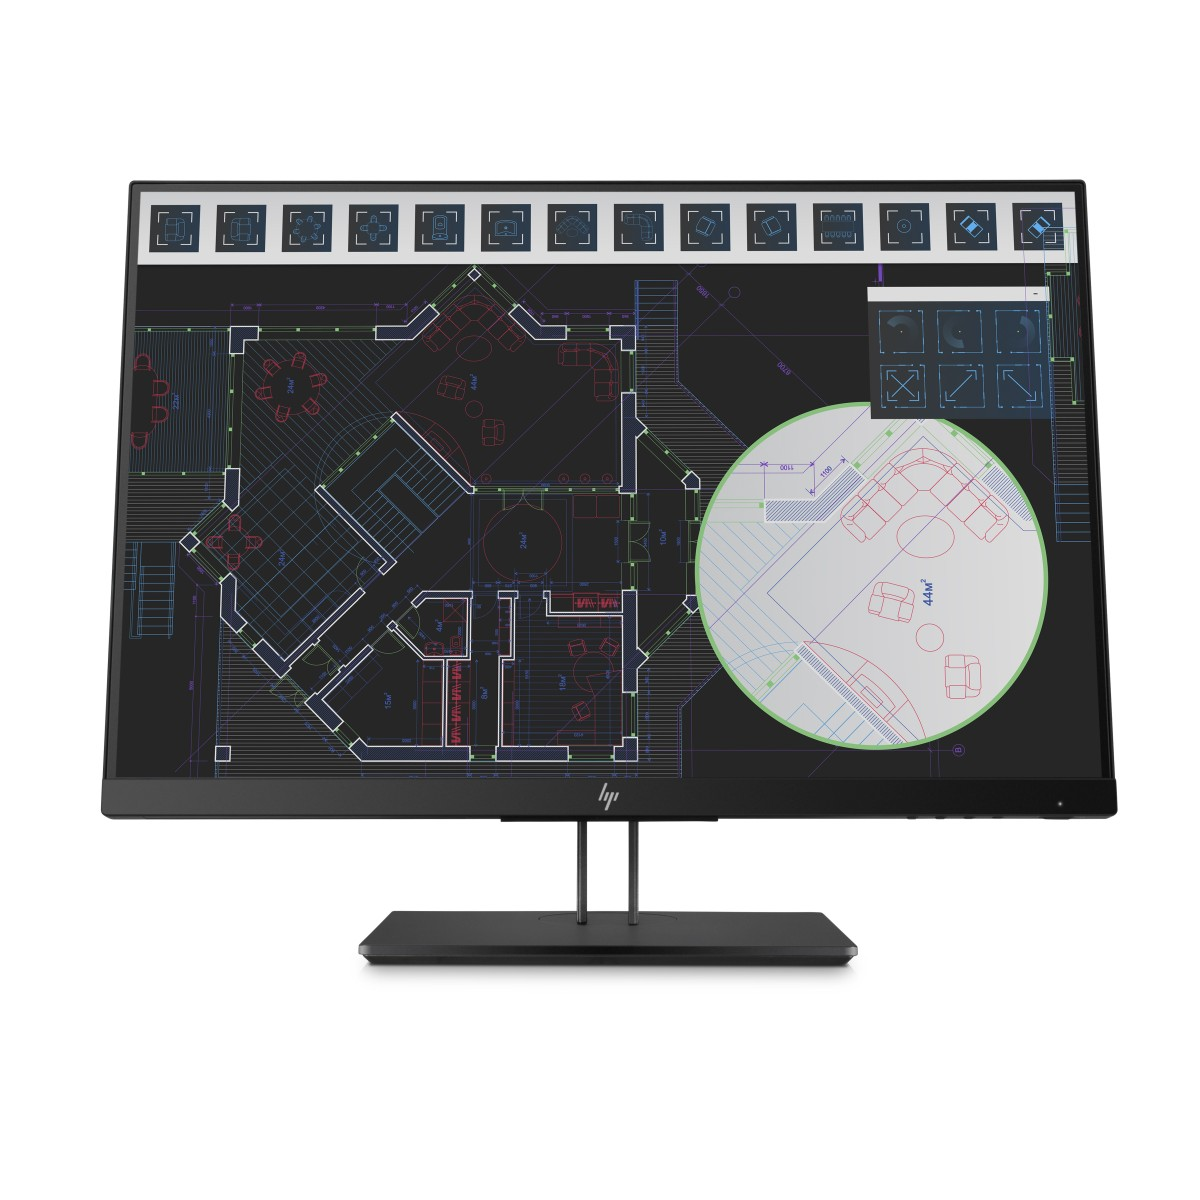 HP Z24i 24'' G2 1920x1200/300jas/DP/HDMI/VGA/5ms